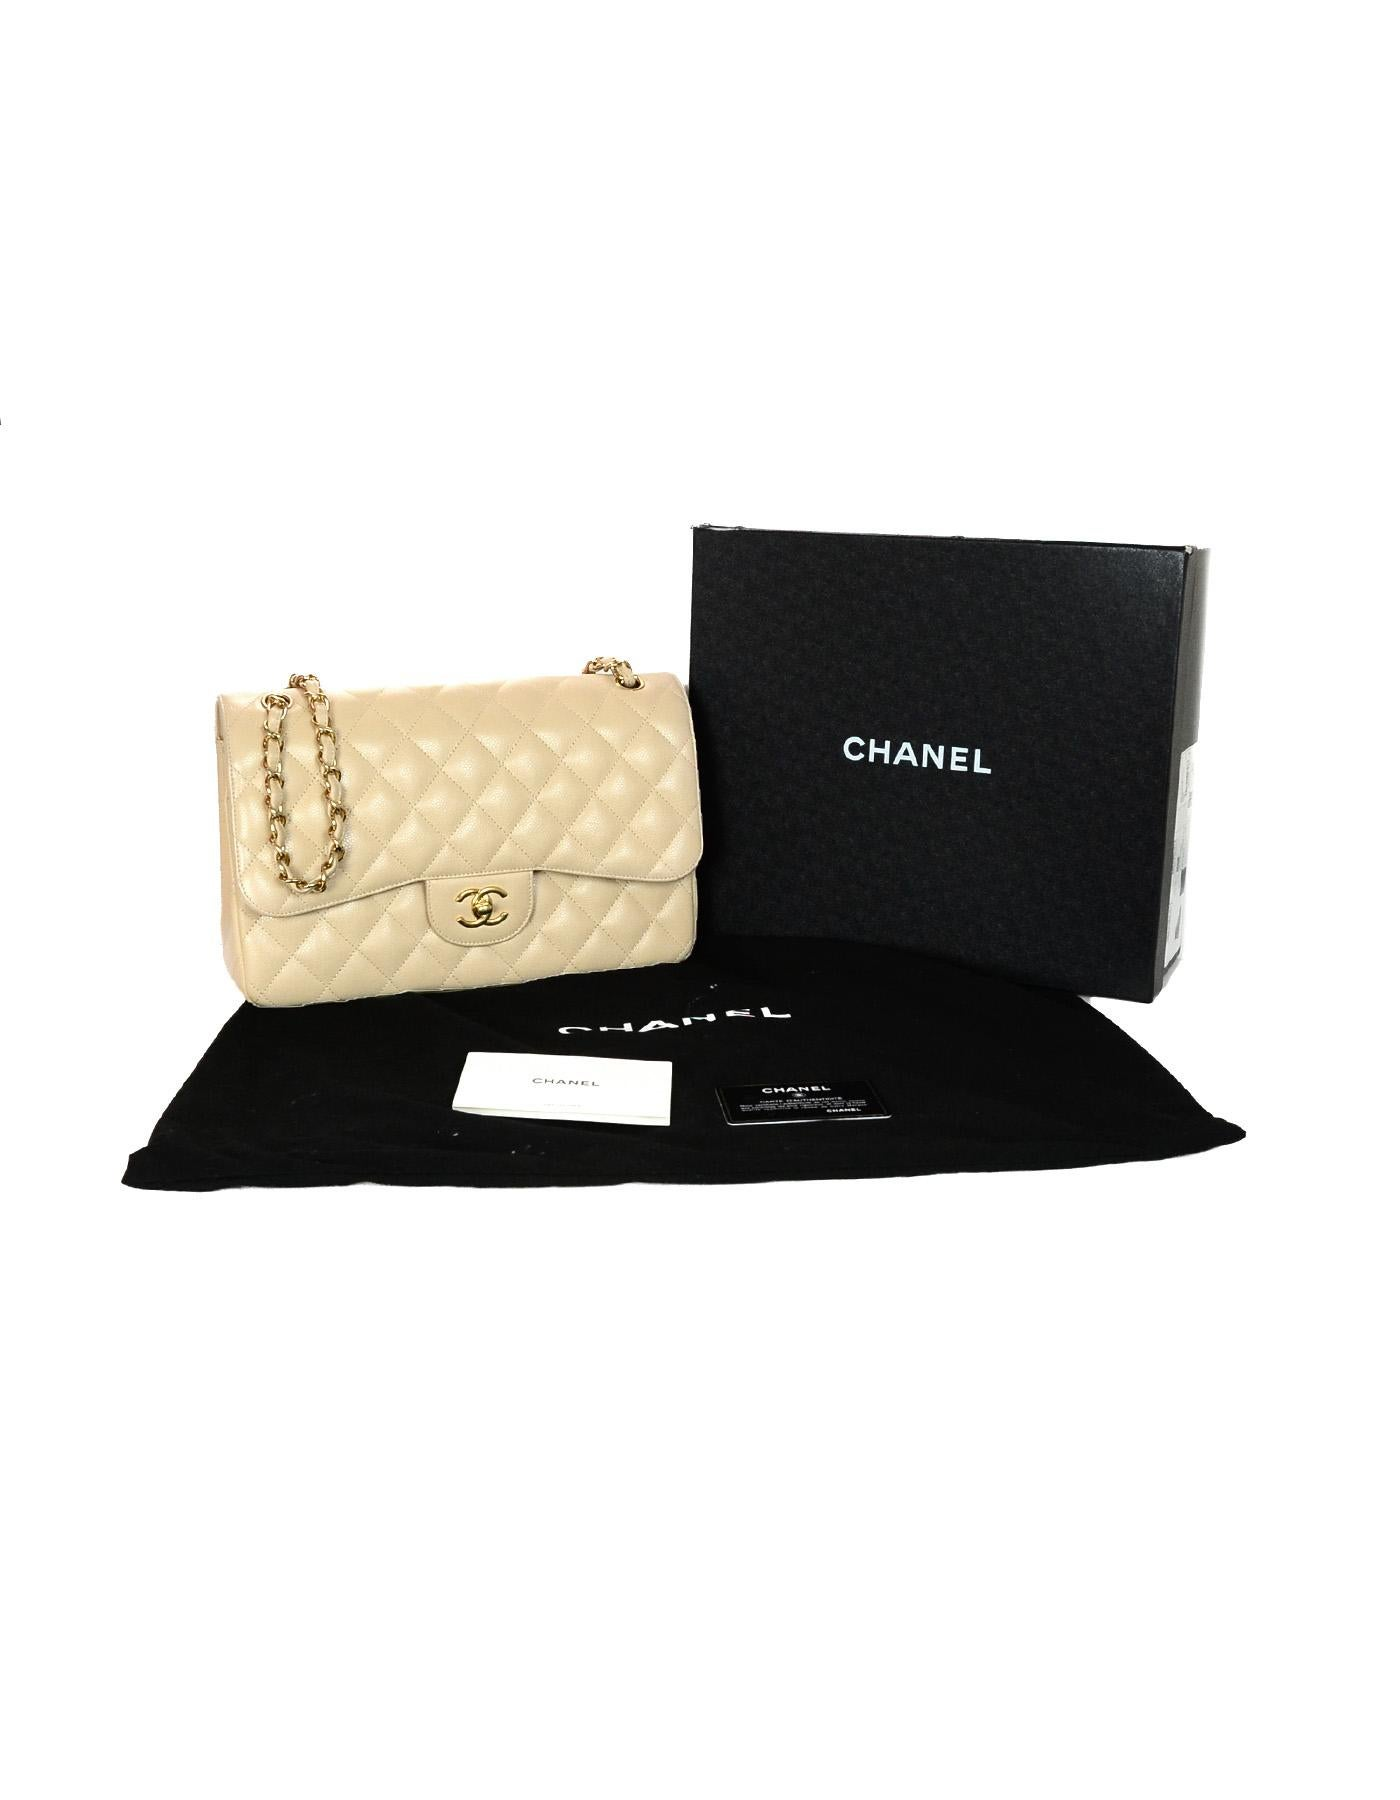 b7d101b15a3a Chanel Beige Clair Caviar Leather Quilted Jumbo Double Flap Classic Bag W/  GHW For Sale at 1stdibs